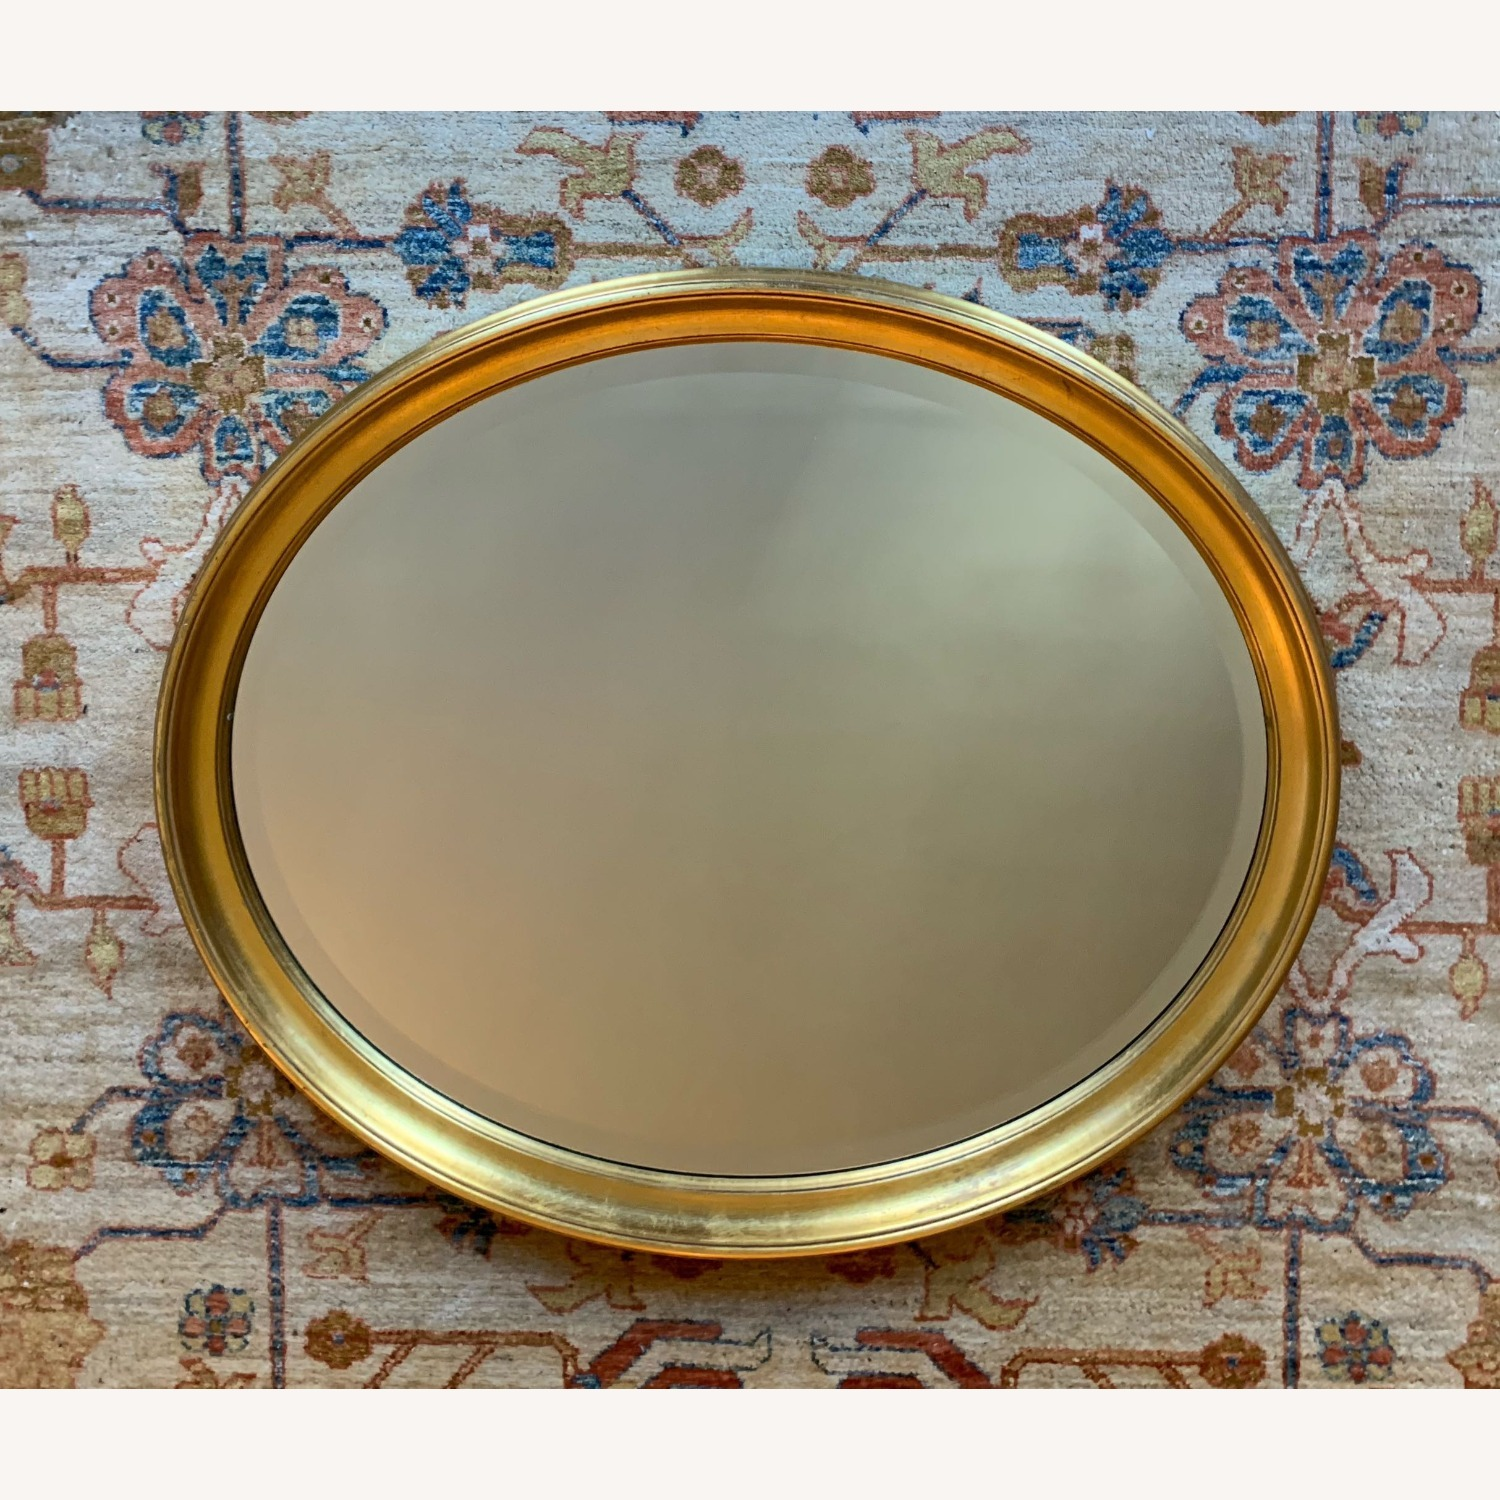 Oval Giltwood Frame with Beveled Mirror - image-1